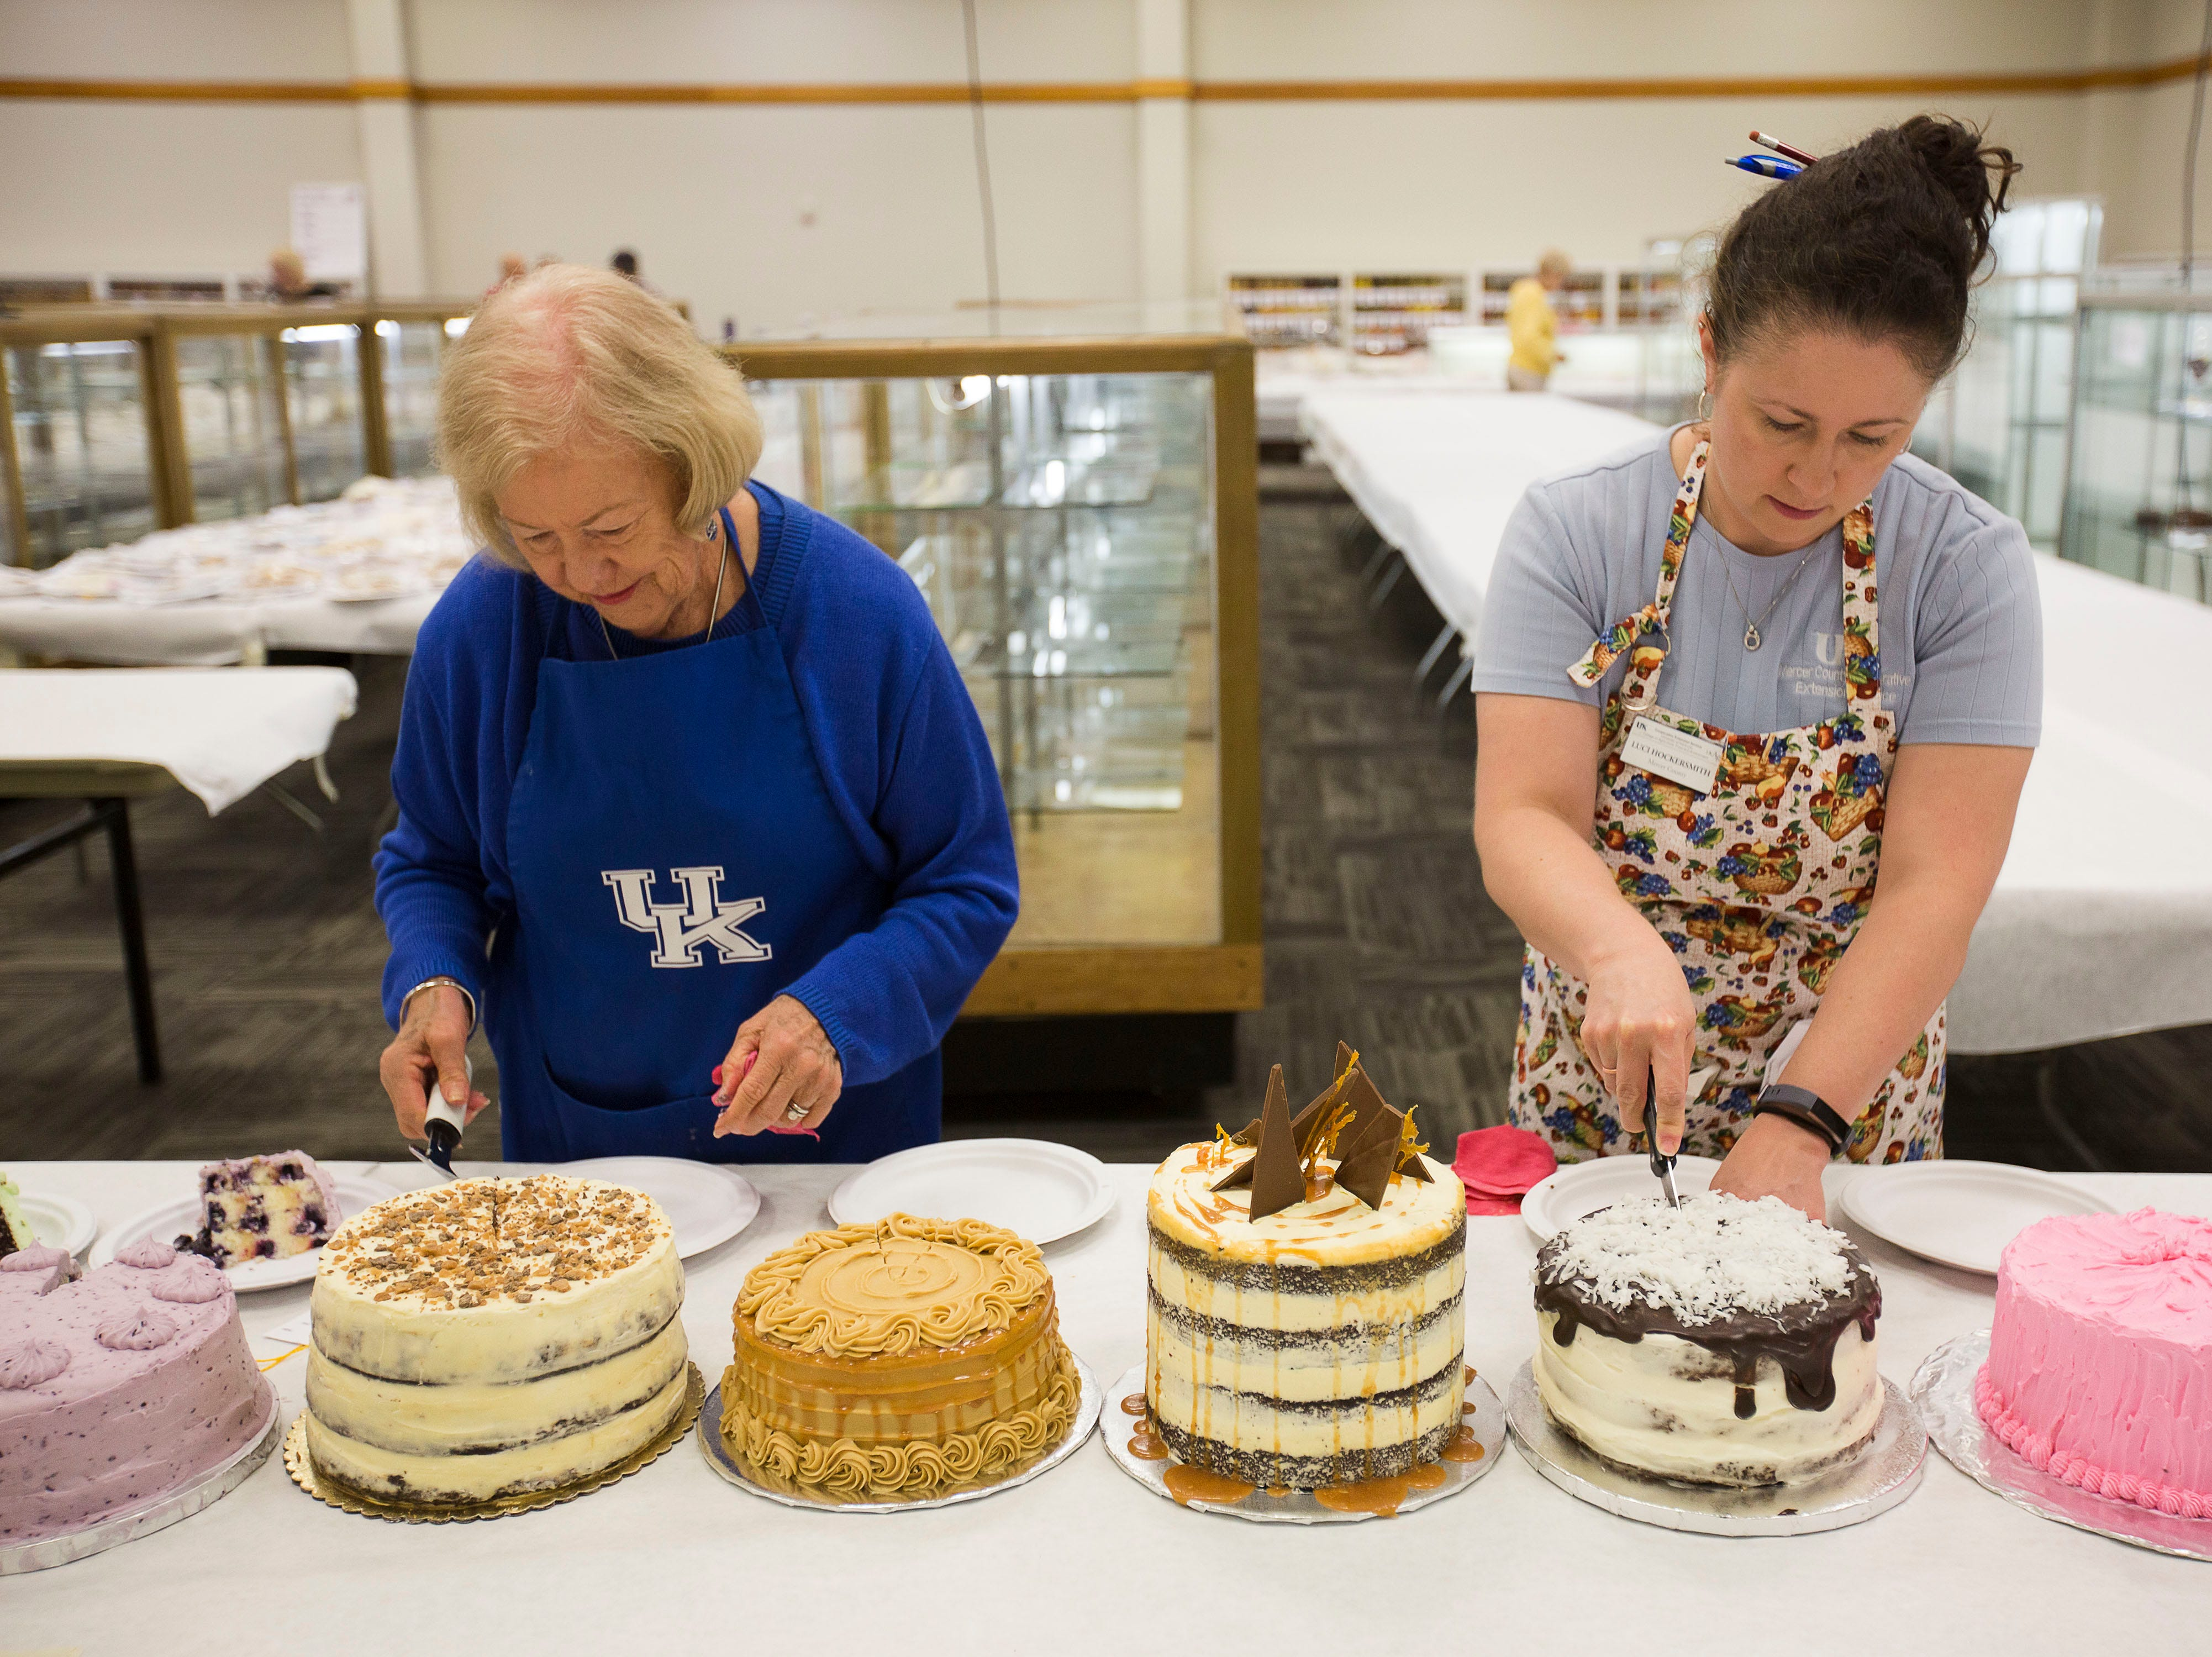 """Jeanette Chapman, left, and Luci Hocerksmith, right, slice slivers of cake to be judged during the """"Favorite Cake"""" taste testing at the Kentucky State Fair on Tuesday, August 14, 2018."""